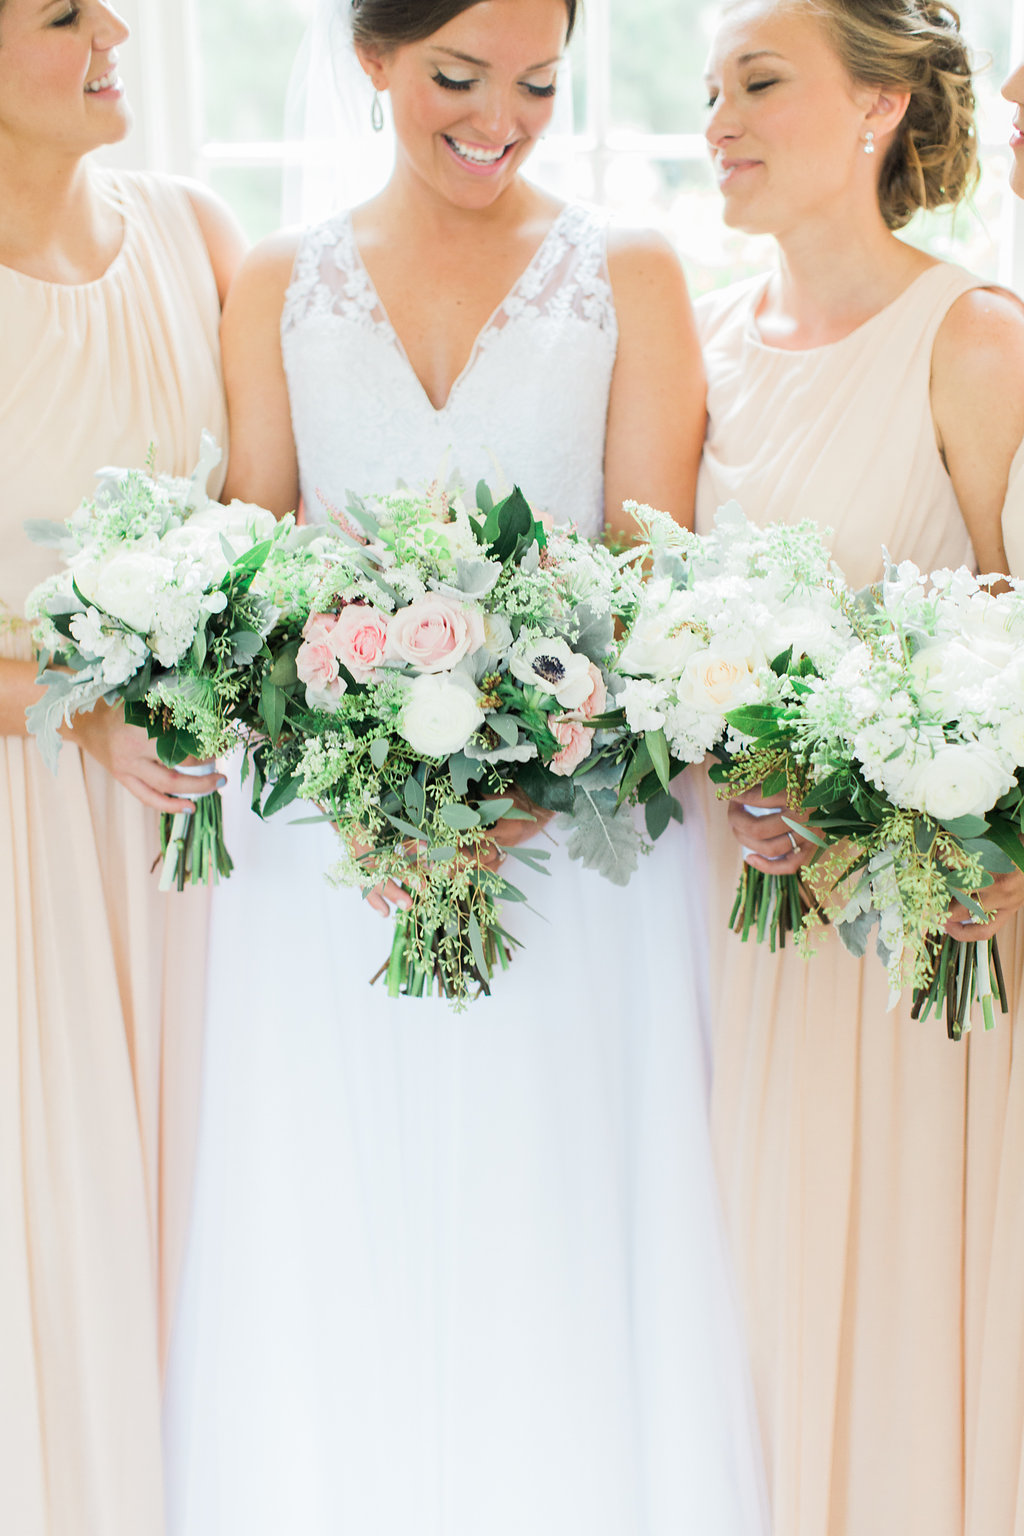 the-happy-bloom-photography-ivory-and-beau-wedding-planning-ivory-and-beau-bridal-boutique-whitfield-chapel-wedding-10-downing-wedding-savannah-wedding-historic-savannah-wedding-savannah-wedding-planner-savannah-weddings-a-to-zinnias-20.jpg